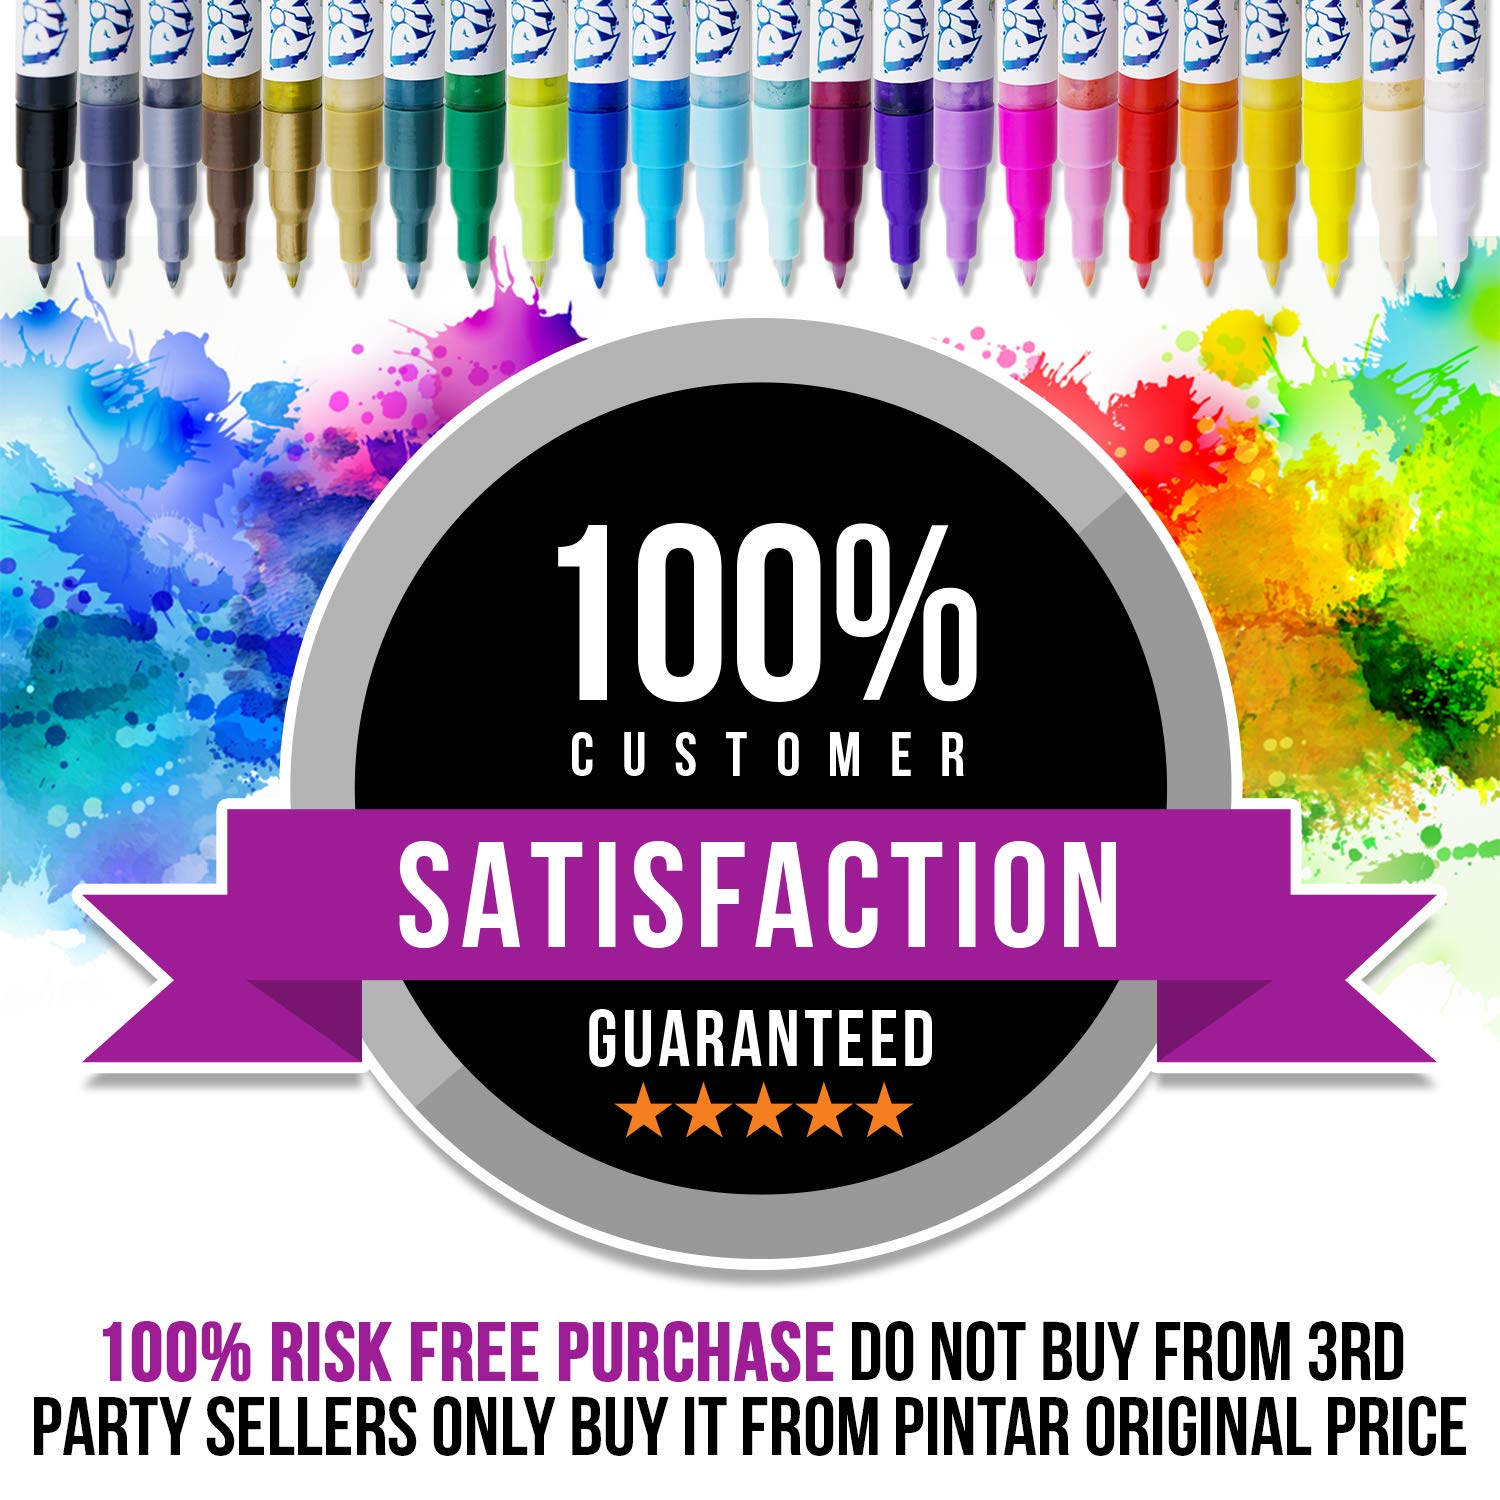 PINTAR - Acrylic Fine Tip Paint Pens For Rock Painting Art - 24 Pack Vibrant Colors for Wood, Glass, Metal and Ceramic - Water Resistant and Quick Drying Ink For Arts & Crafts by PINTAR (Image #6)